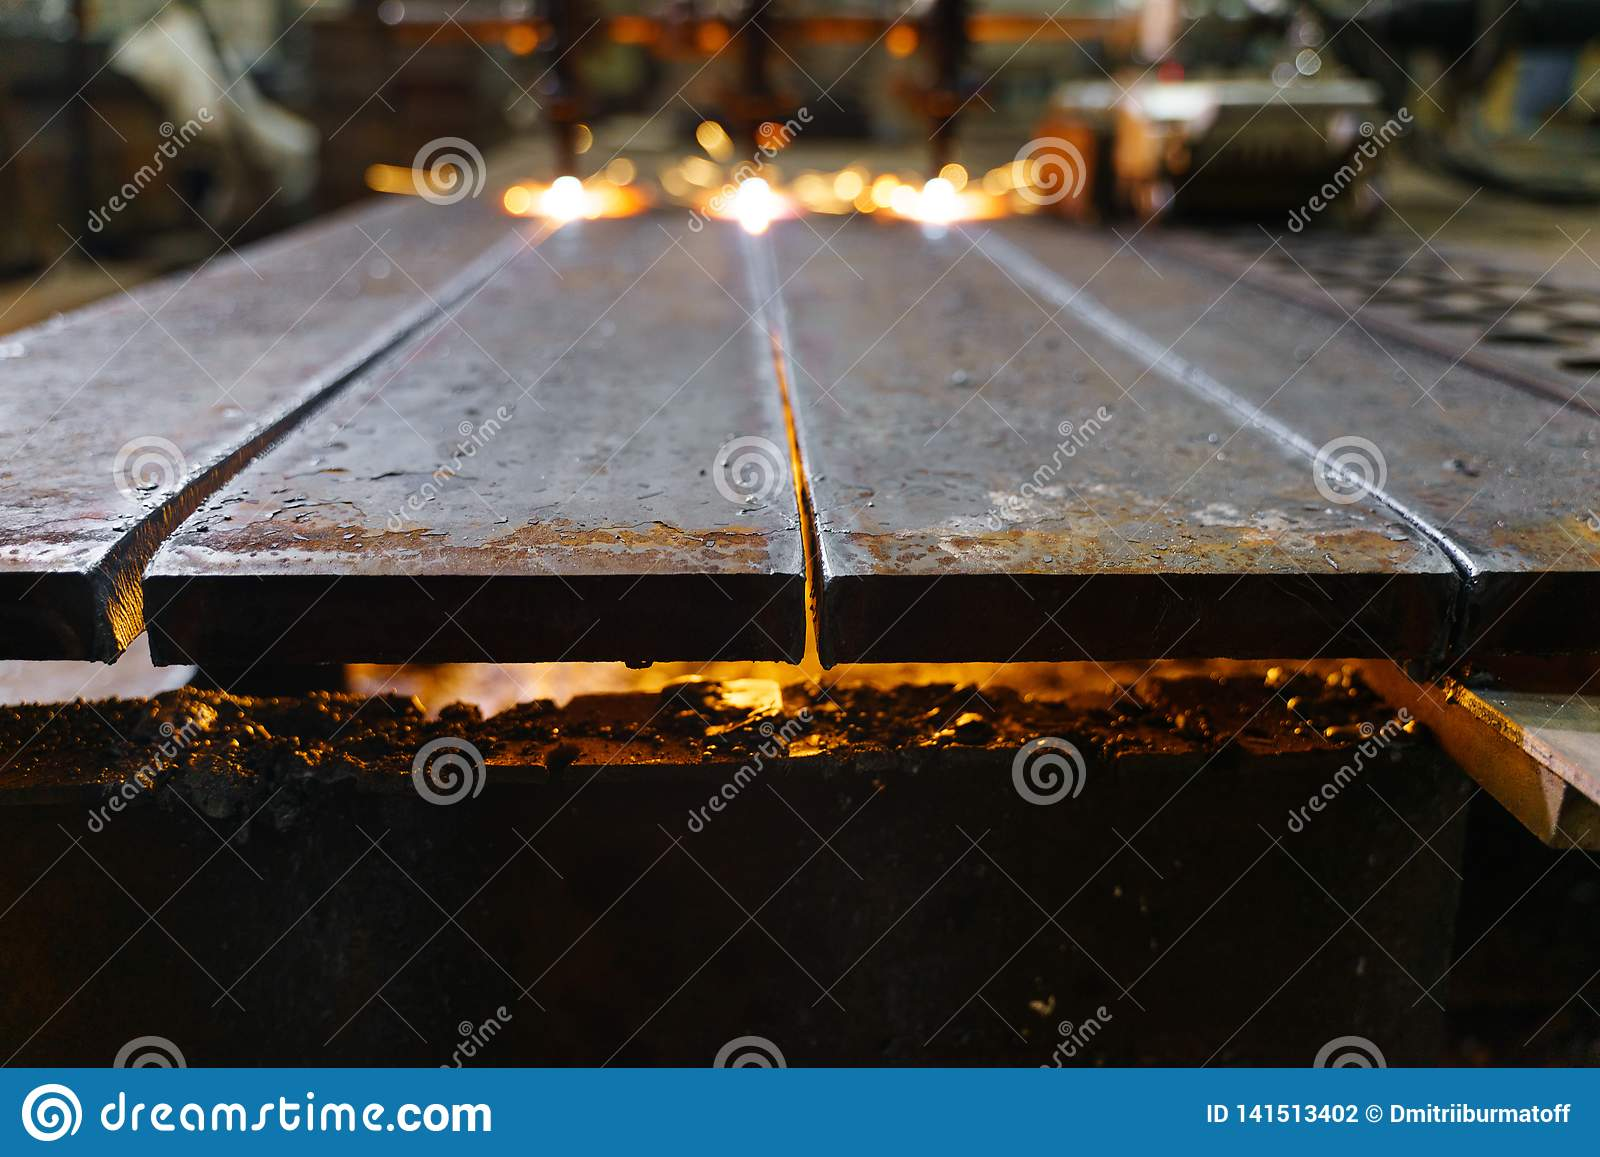 The machine cuts metal sheets with gas